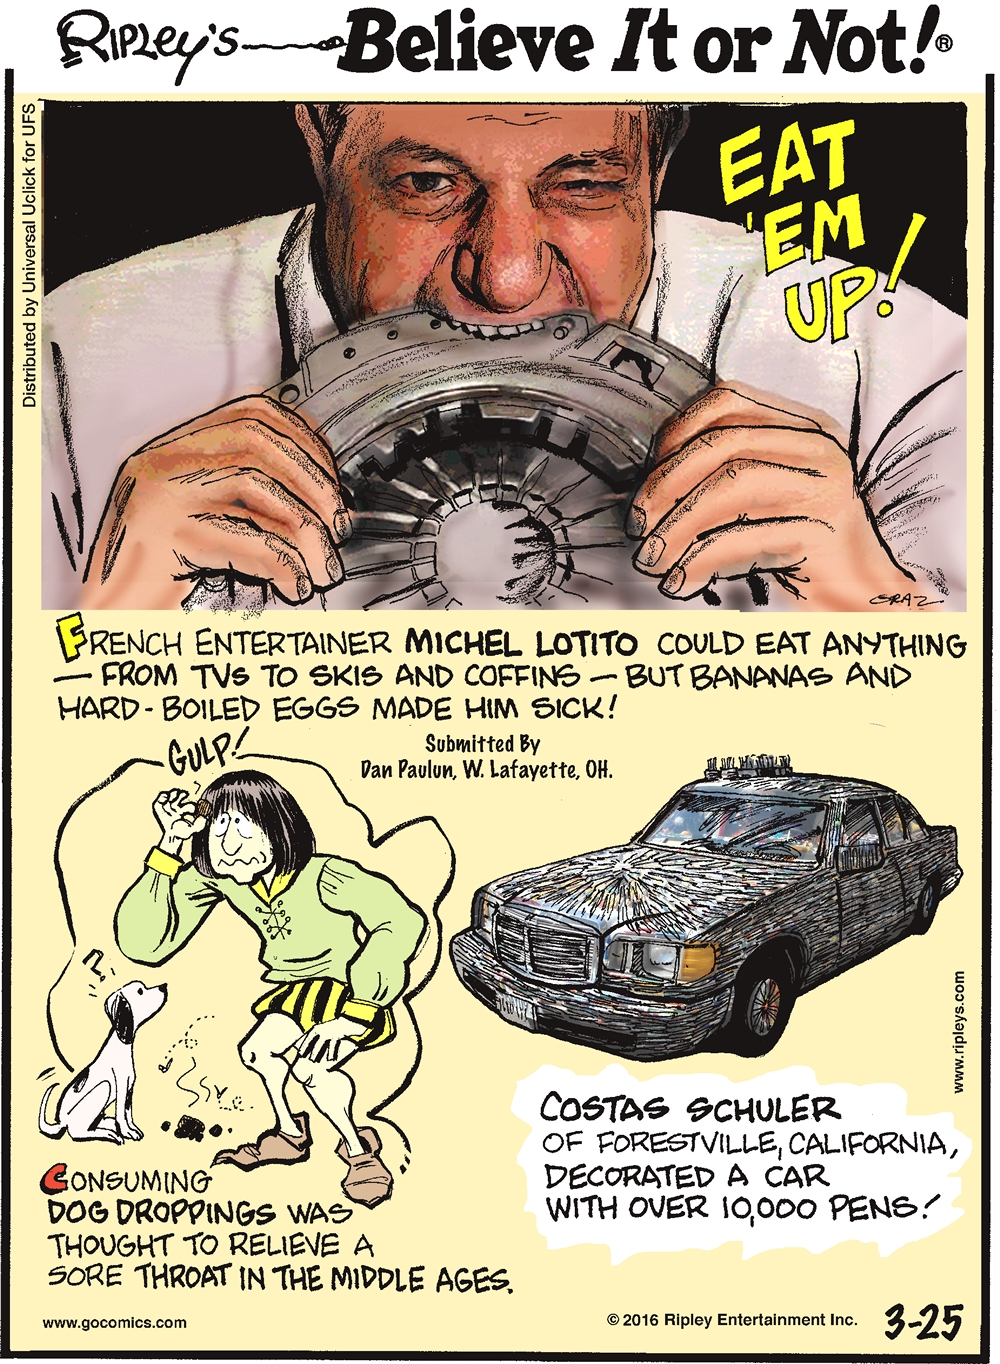 French entertainer Michel Lotito could eat anything from TVs to skis and coffins—but bananas and hard-boiled eggs made him sick! Submitted by Dan Paulun, W. Lafayette, OH. -------------------- Consuming dog droppings was thought to relieve a sore throat in the middle ages. -------------------- Costas Schuler of Forestville, California, decorated a car with over 10,000 pens!